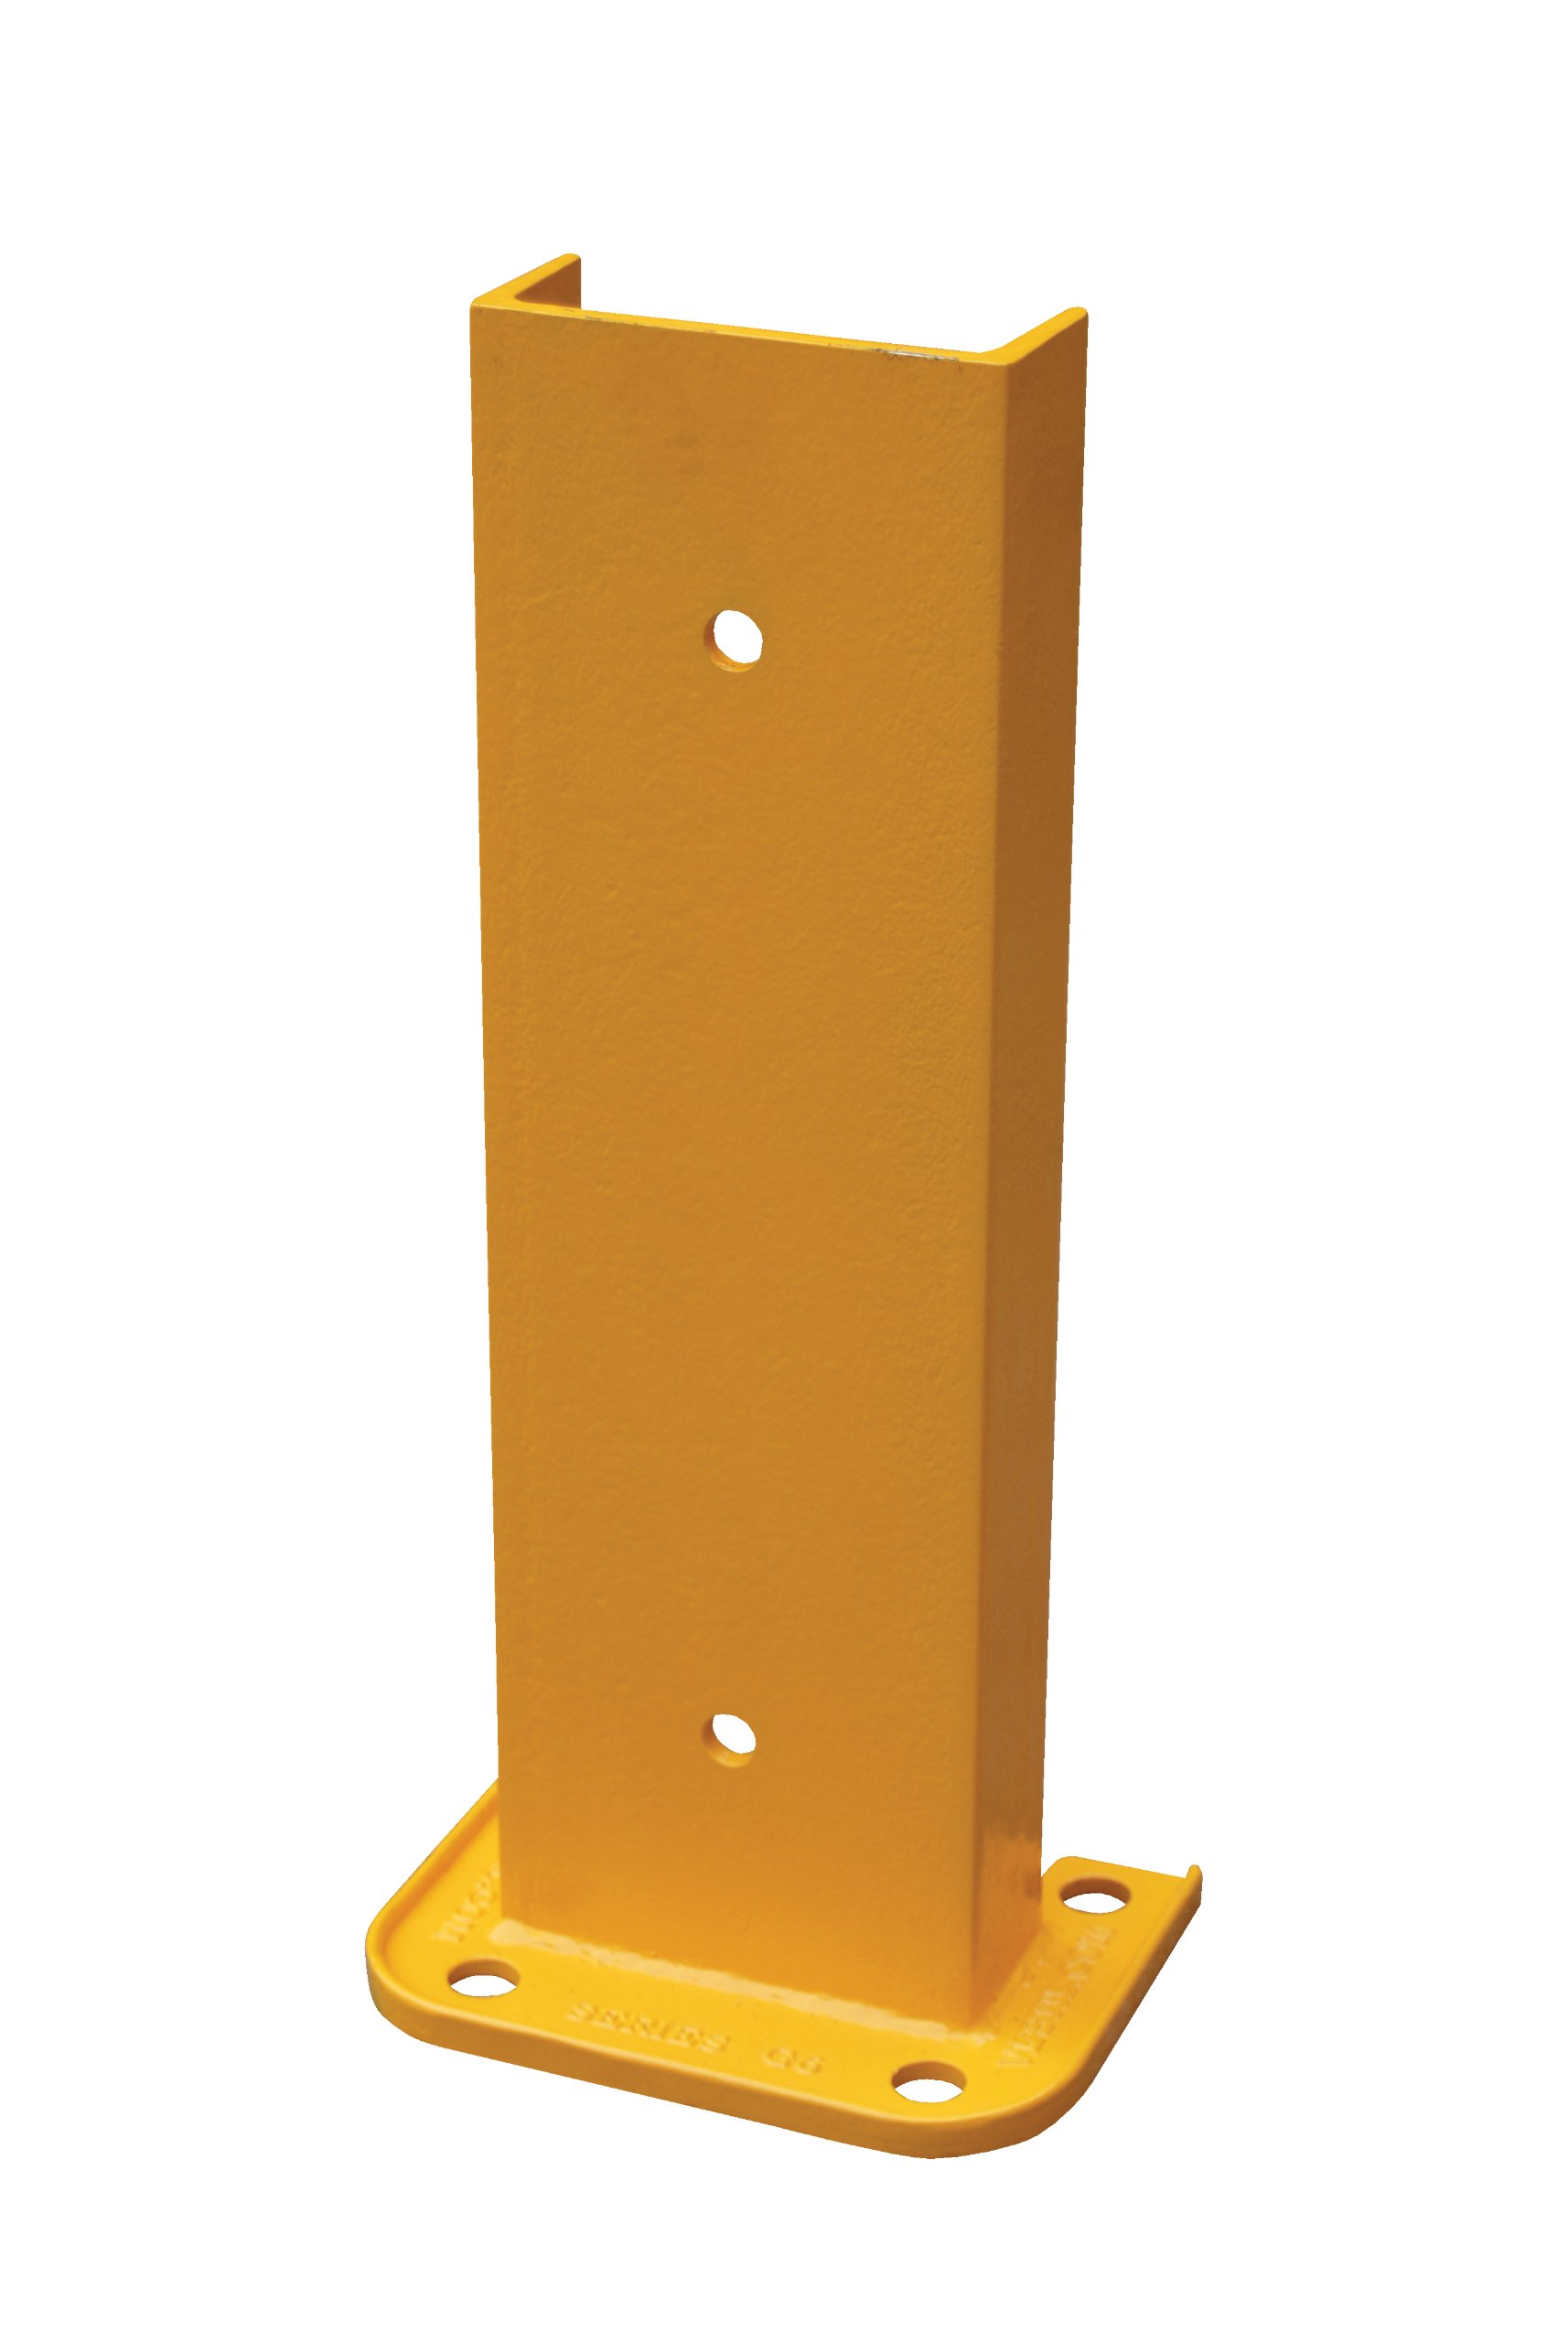 Vestil G6-18 Structural Steel Rack Guard, 4 Mounting Holes, 18-1/4'' Height, Base Measures 8-1/16'' x 6'', Safety Yellow by Vestil